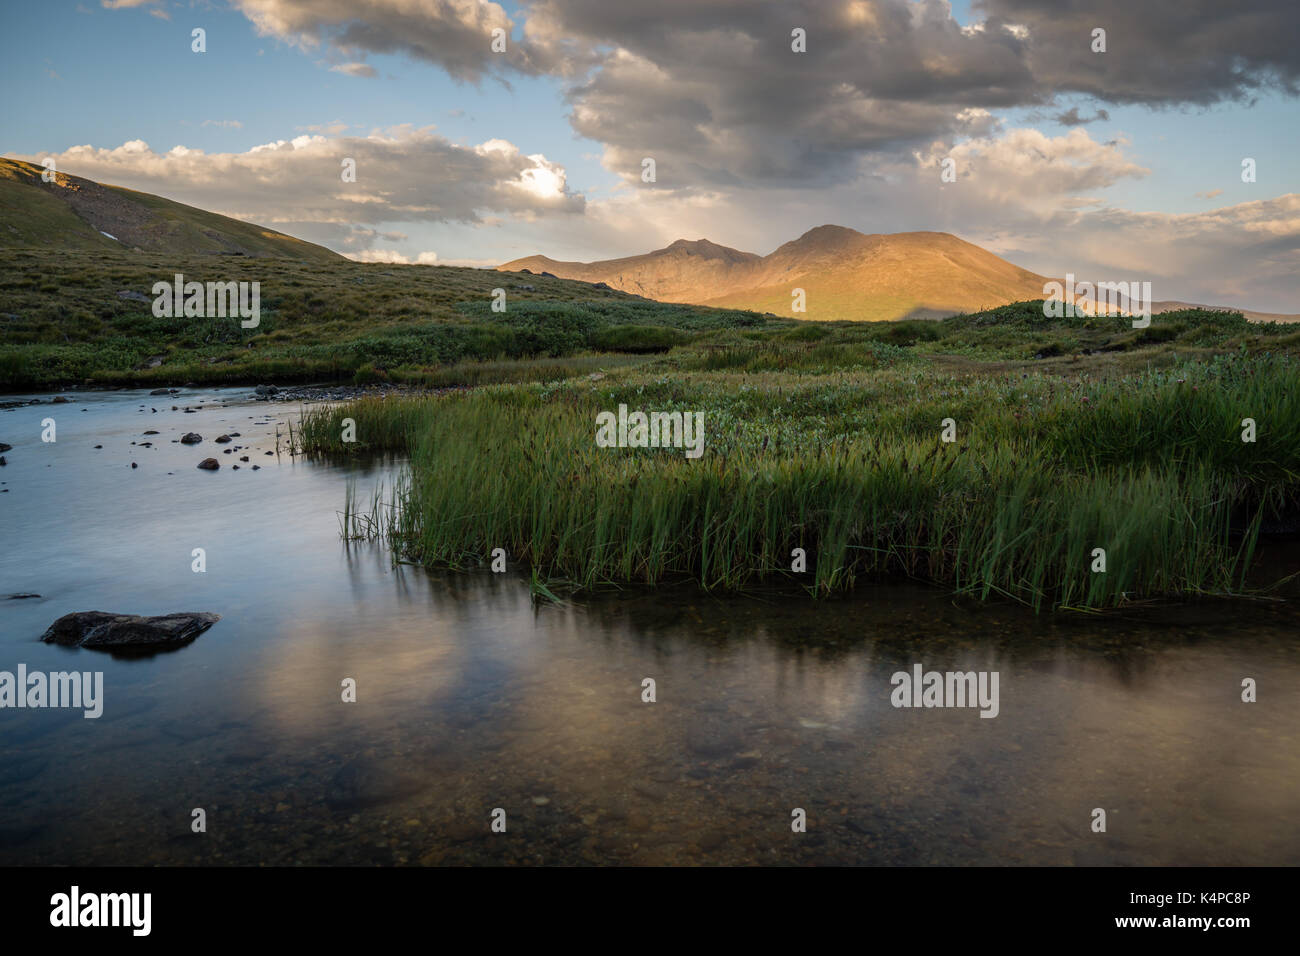 Square Top Lakes, with Mount Bierstadt in the background. - Stock Image